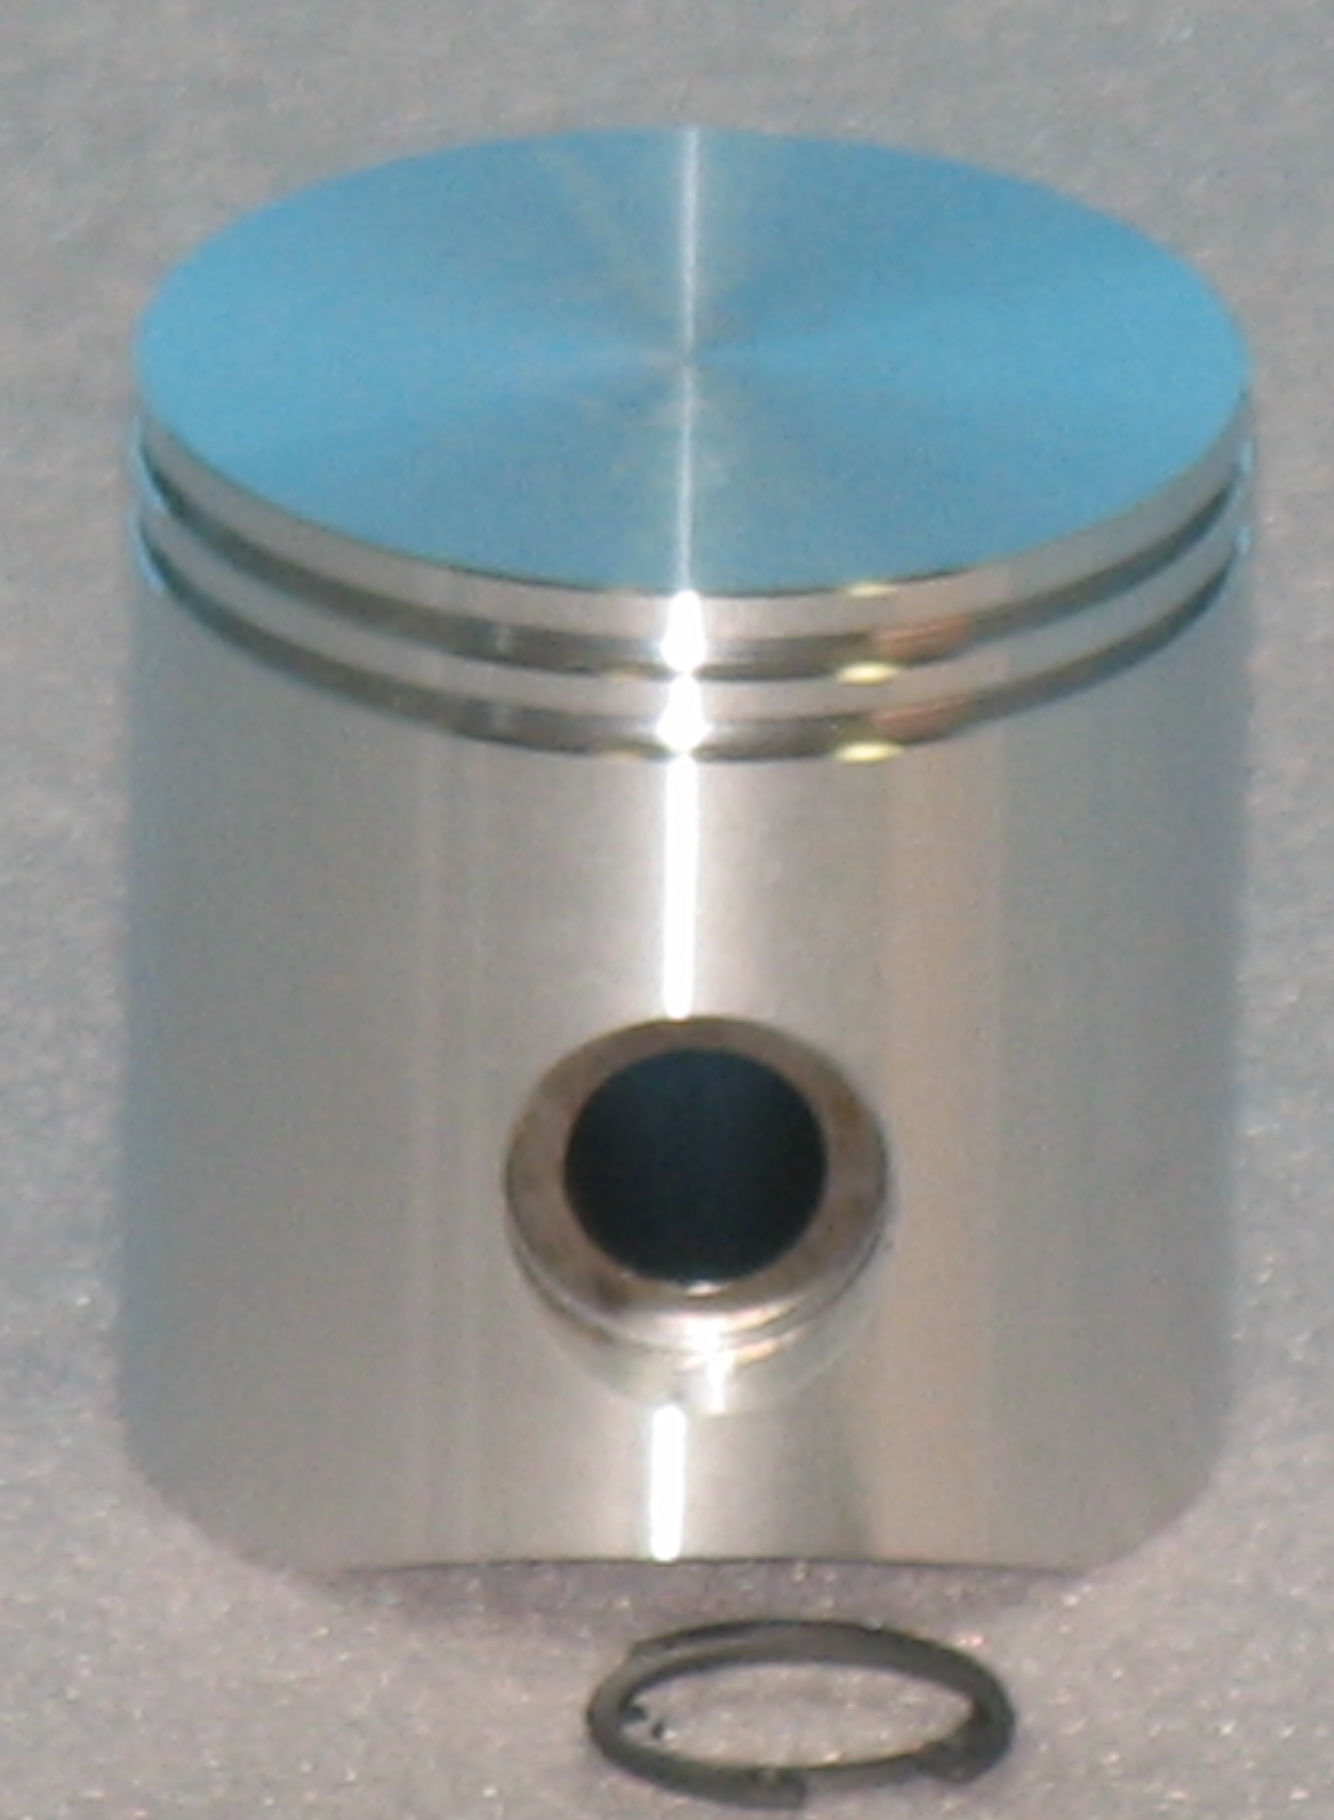 PST-1971 Piston; R/N 6D43-962 (Two Ring Piston)